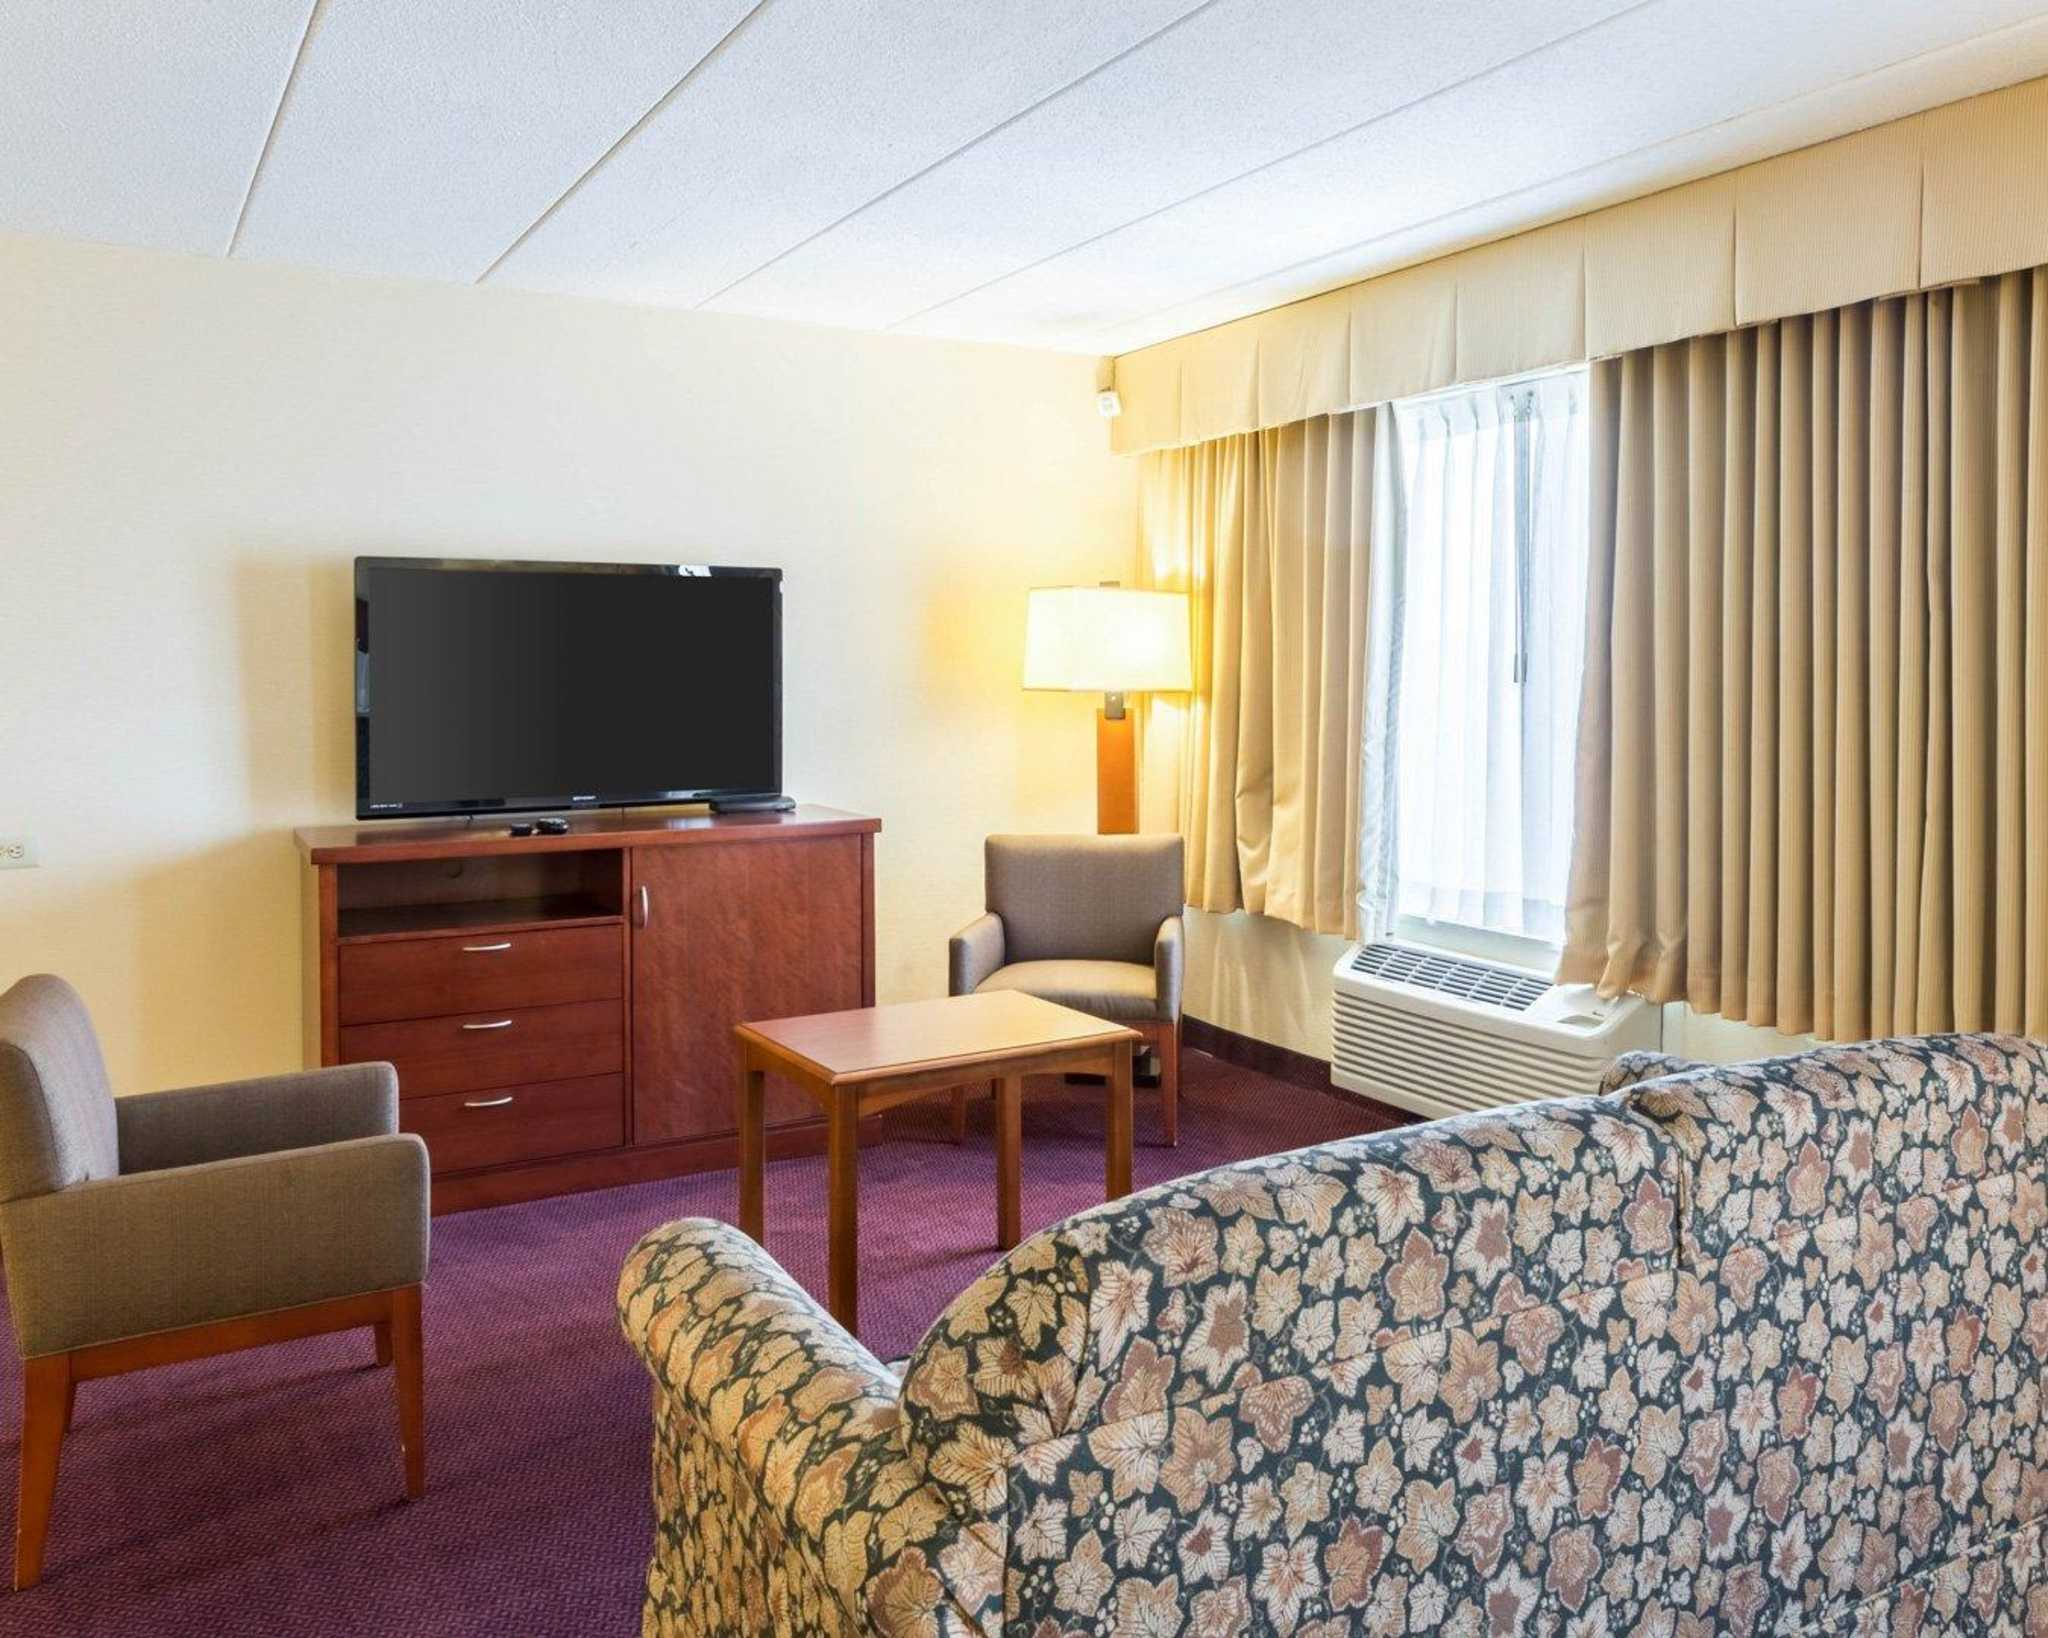 Clarion Hotel image 32